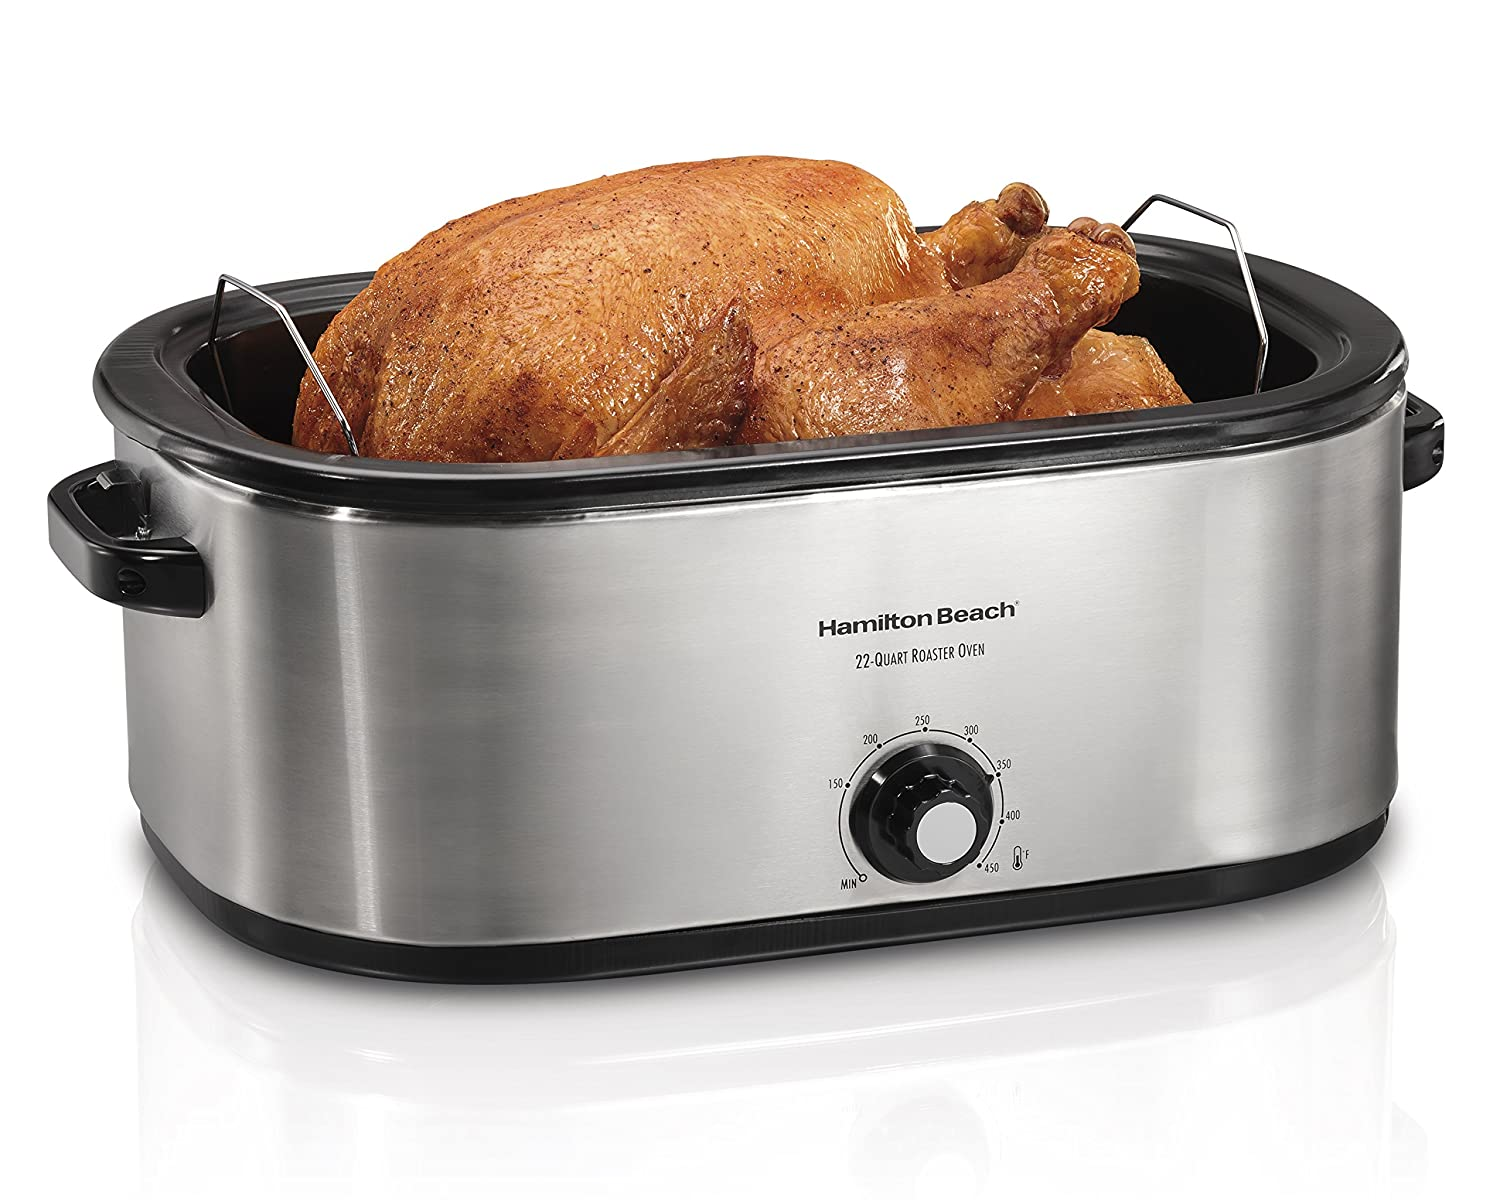 30 lb Turkey Roaster Oven, Double your Oven Space, 22 Quart Capacity, Roasts, Bakes & Cooks - Convenient Countertop Cooking for Meats, Side Dishes, & More, Removable Pan - Removes for Easy Cleanup